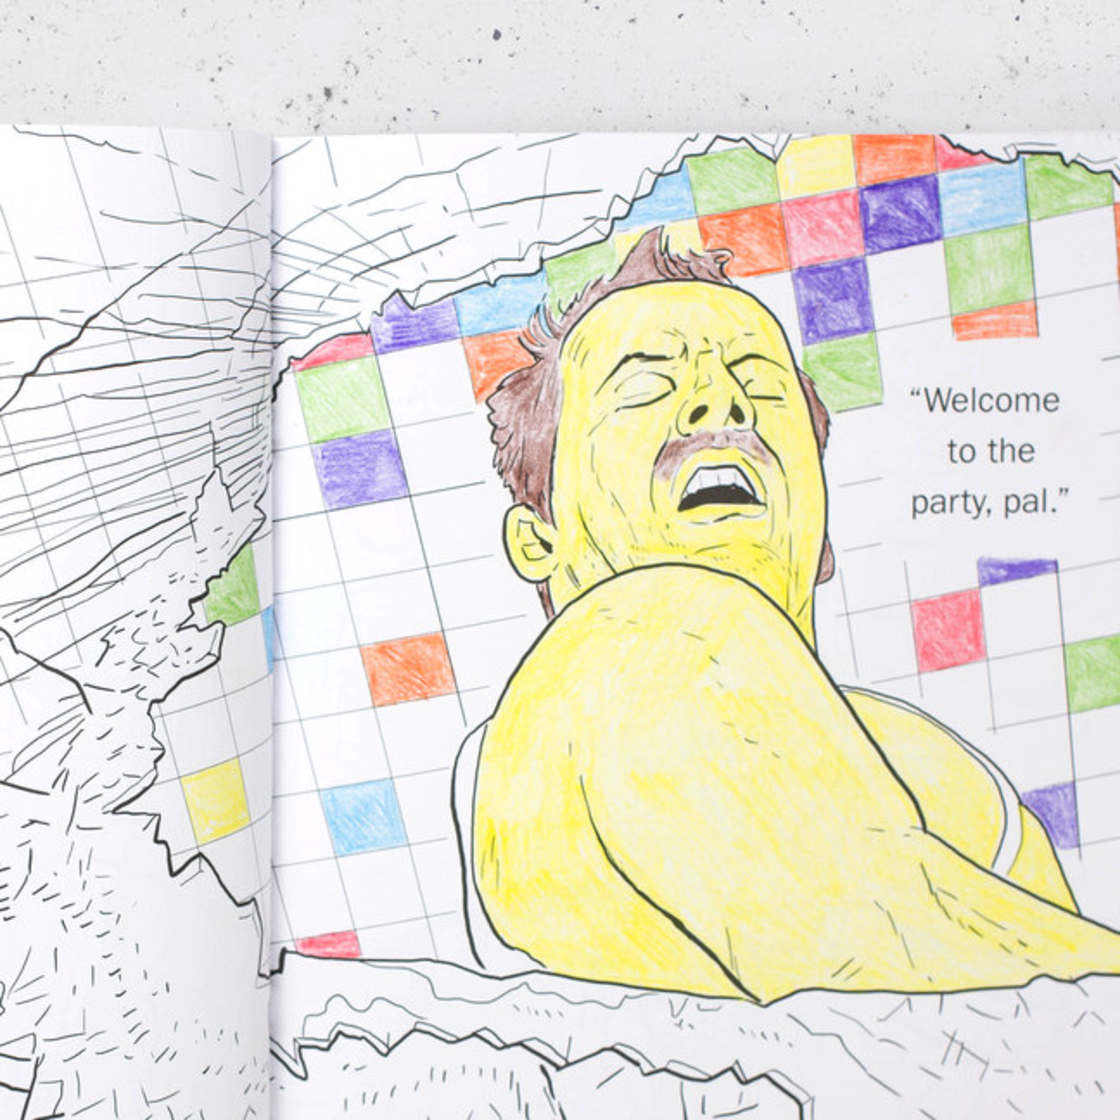 DIE HARD - The coloring book